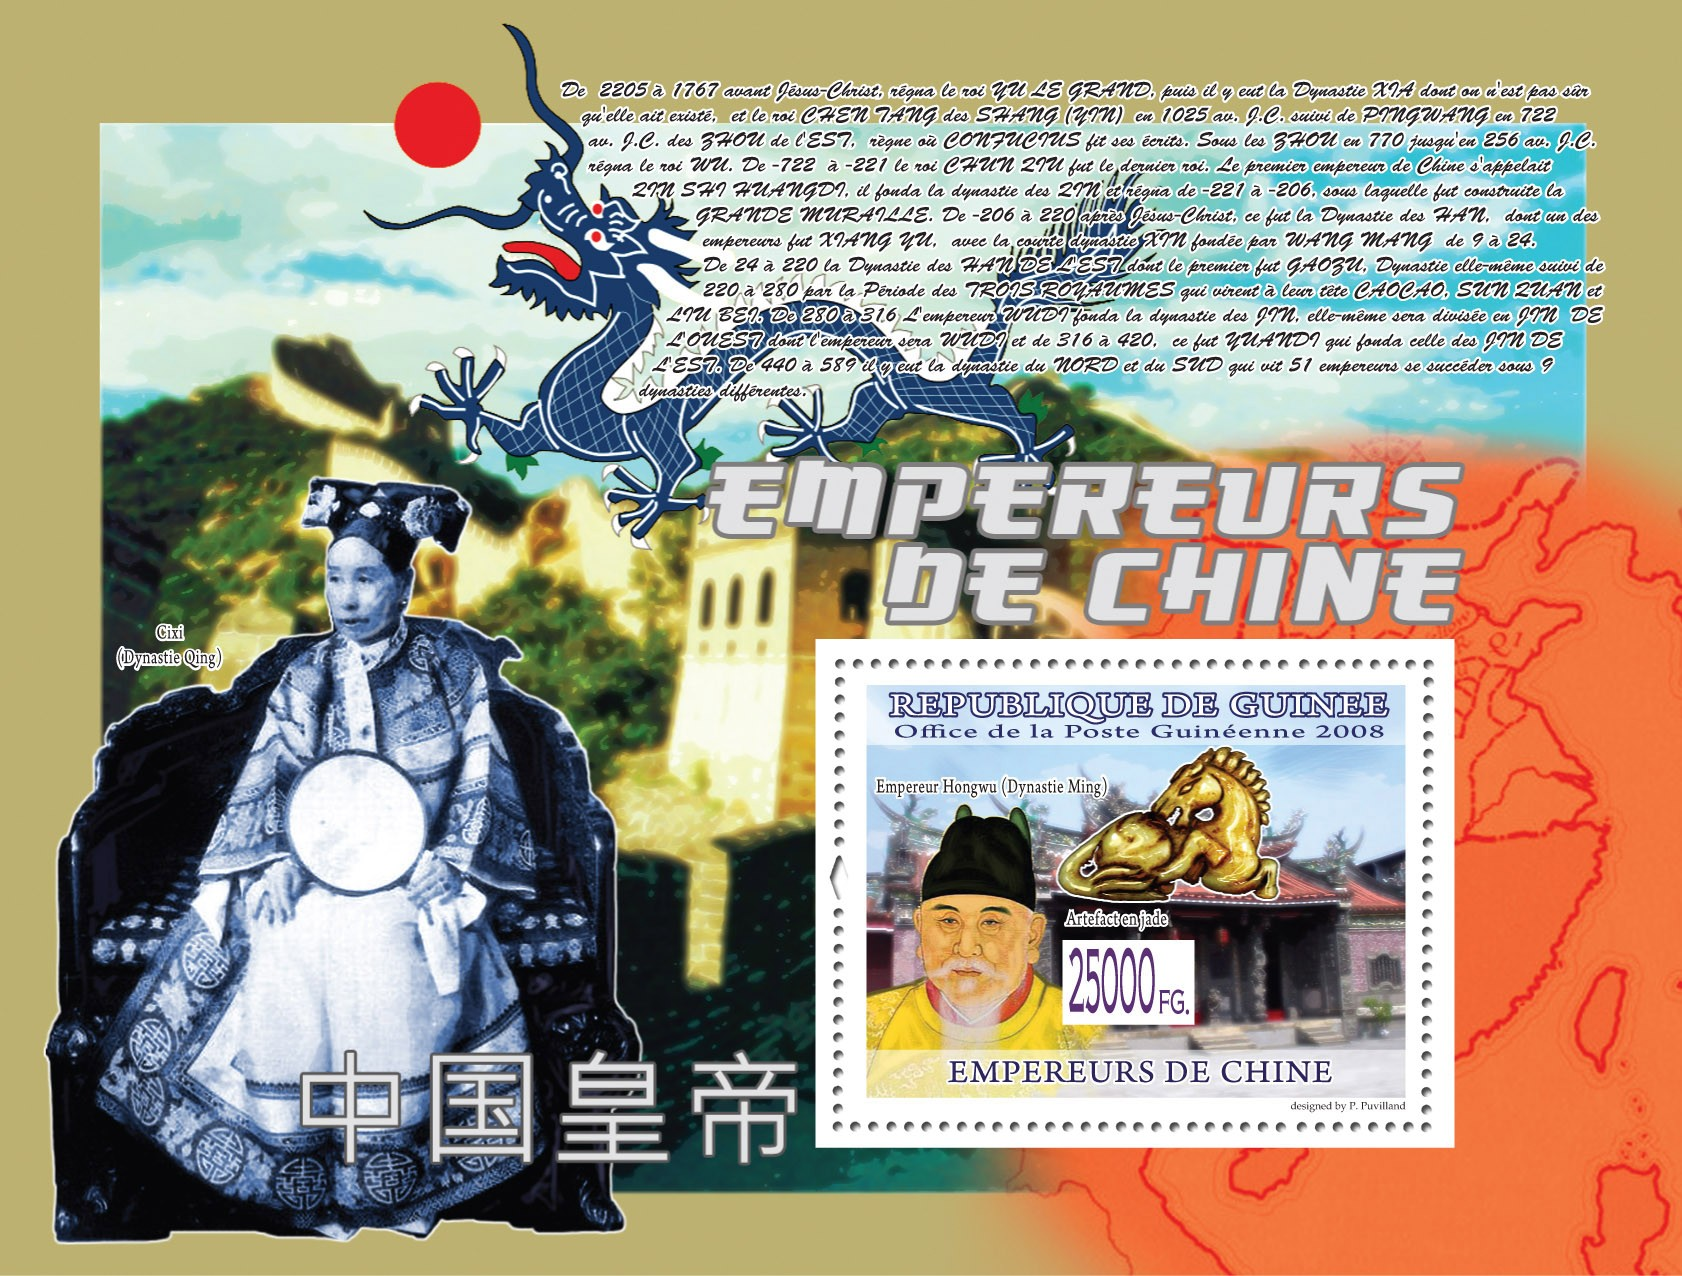 Emperor Hongwu Dynasty Ming ( Cixi ) - Issue of Guinée postage stamps